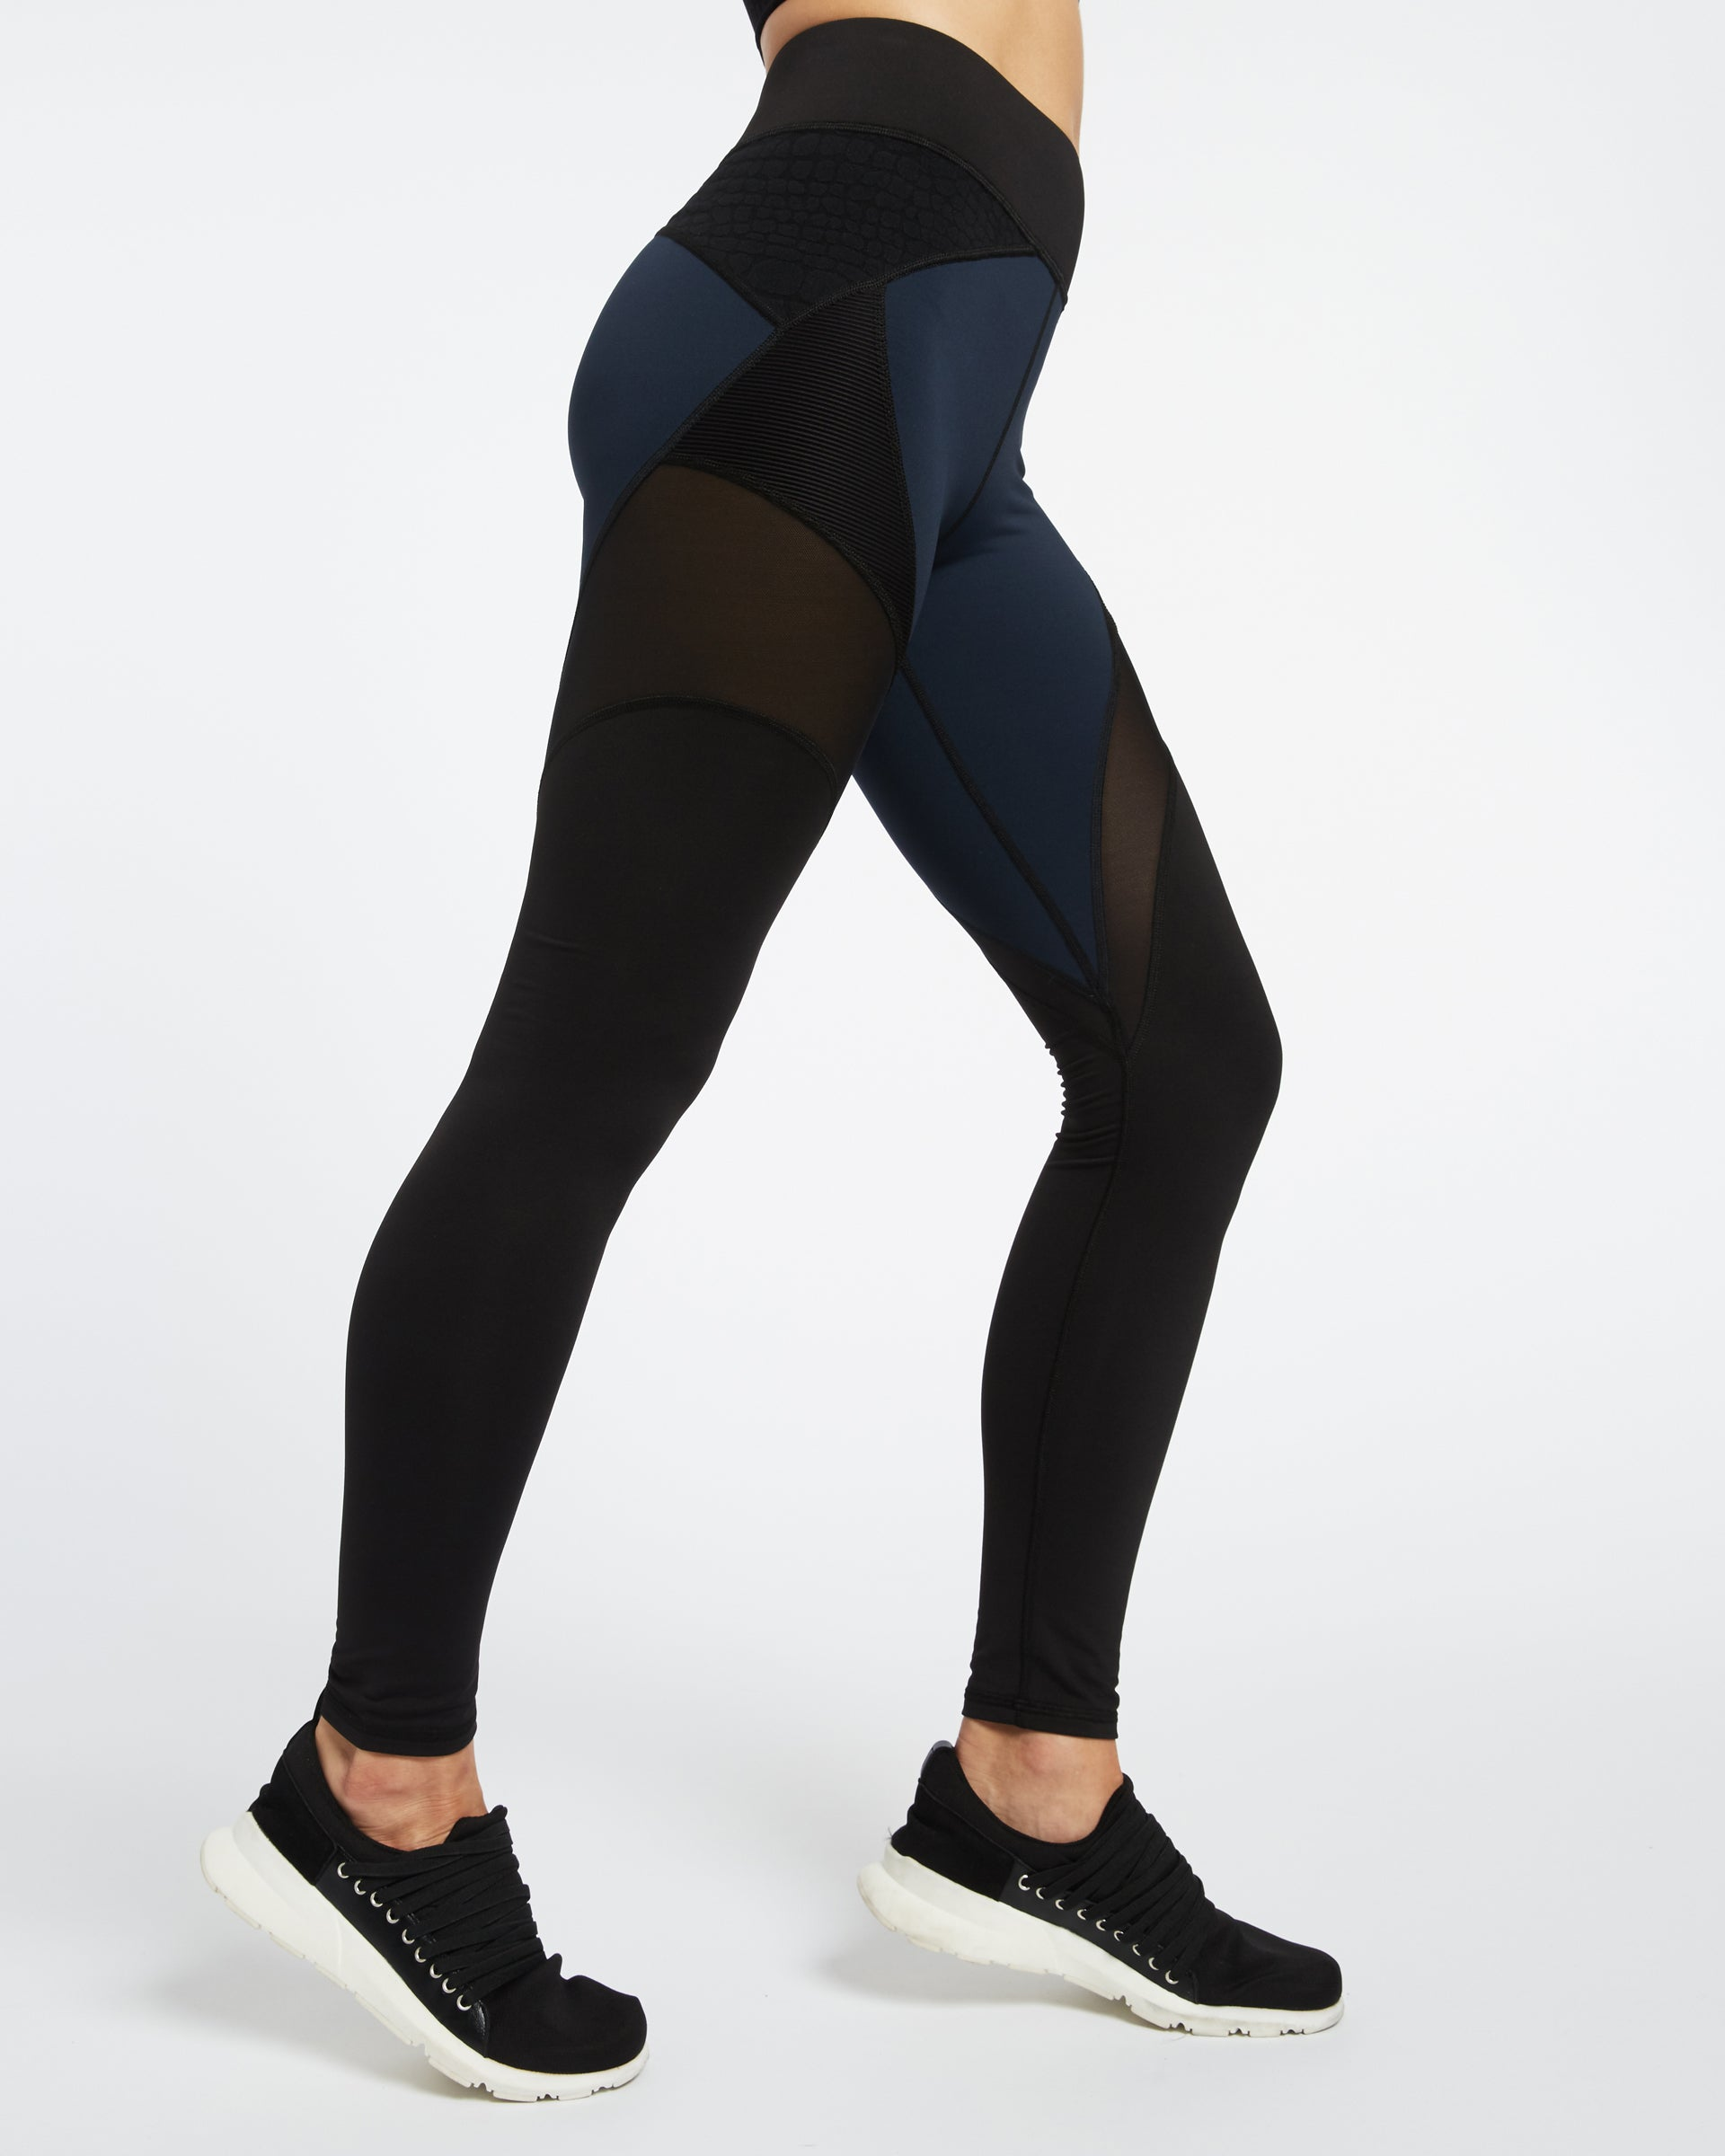 mirage-legging-deep-sea-navy-black